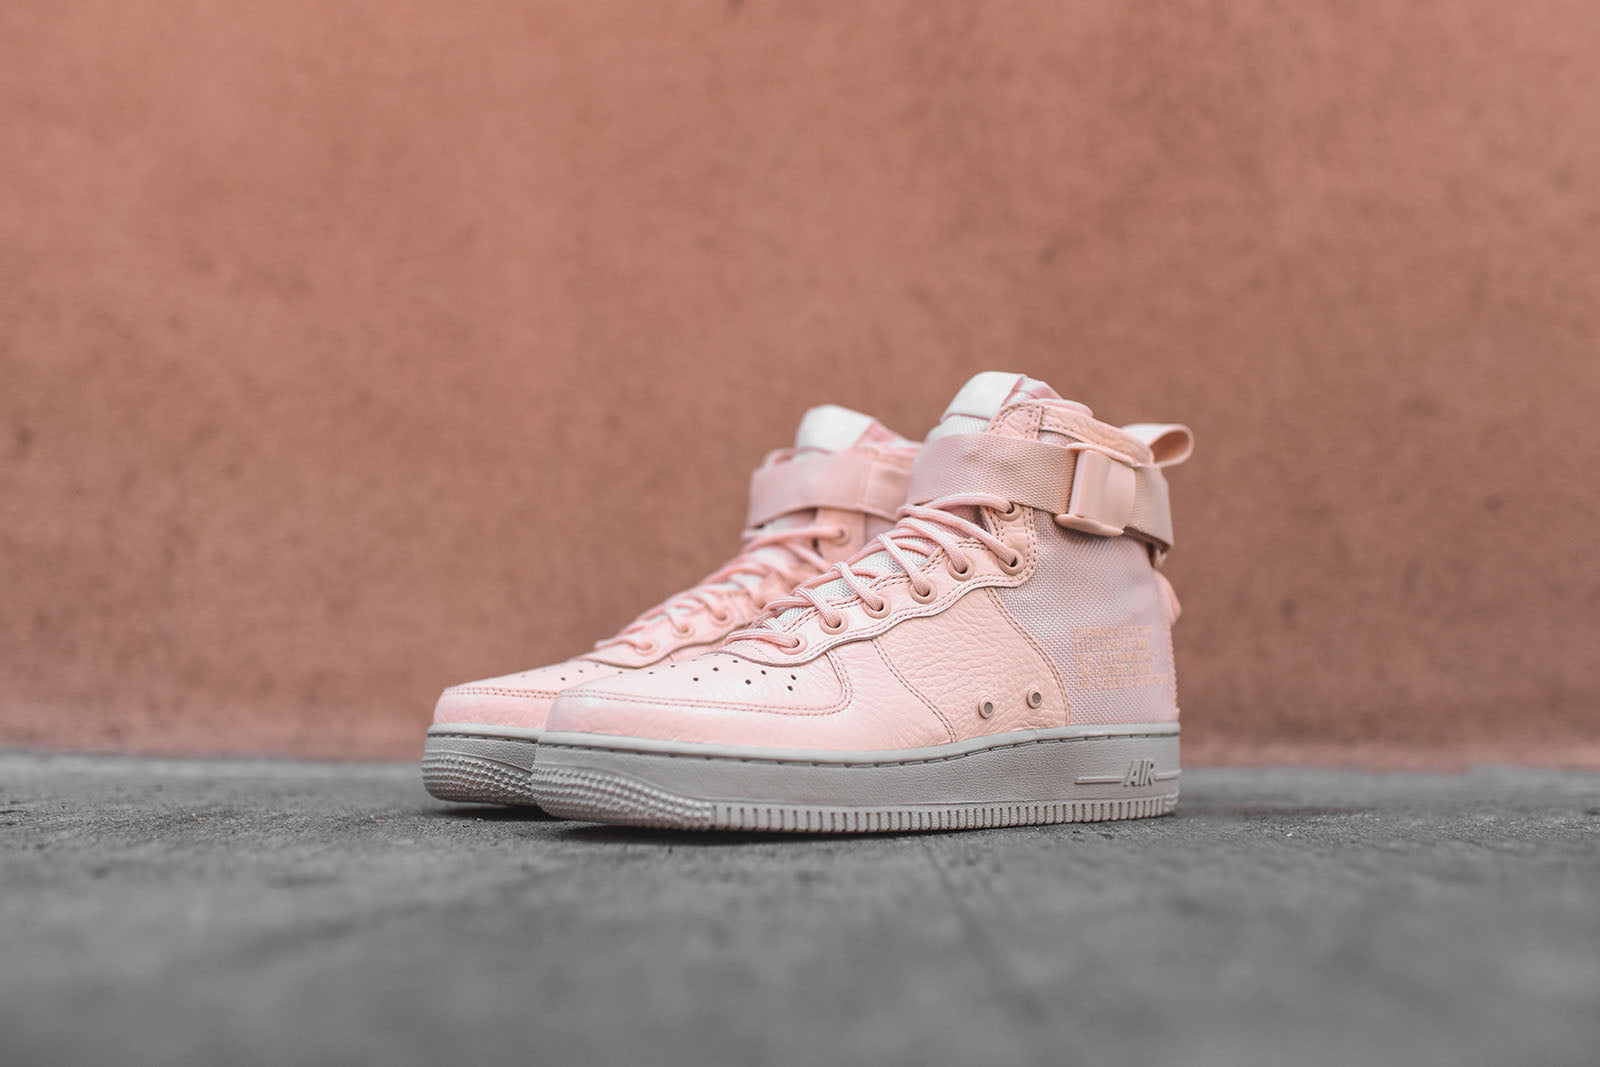 new style 9d4a4 b6d46 Nike WMNS SF-AF1 Mid - Pink / Grey – Kith